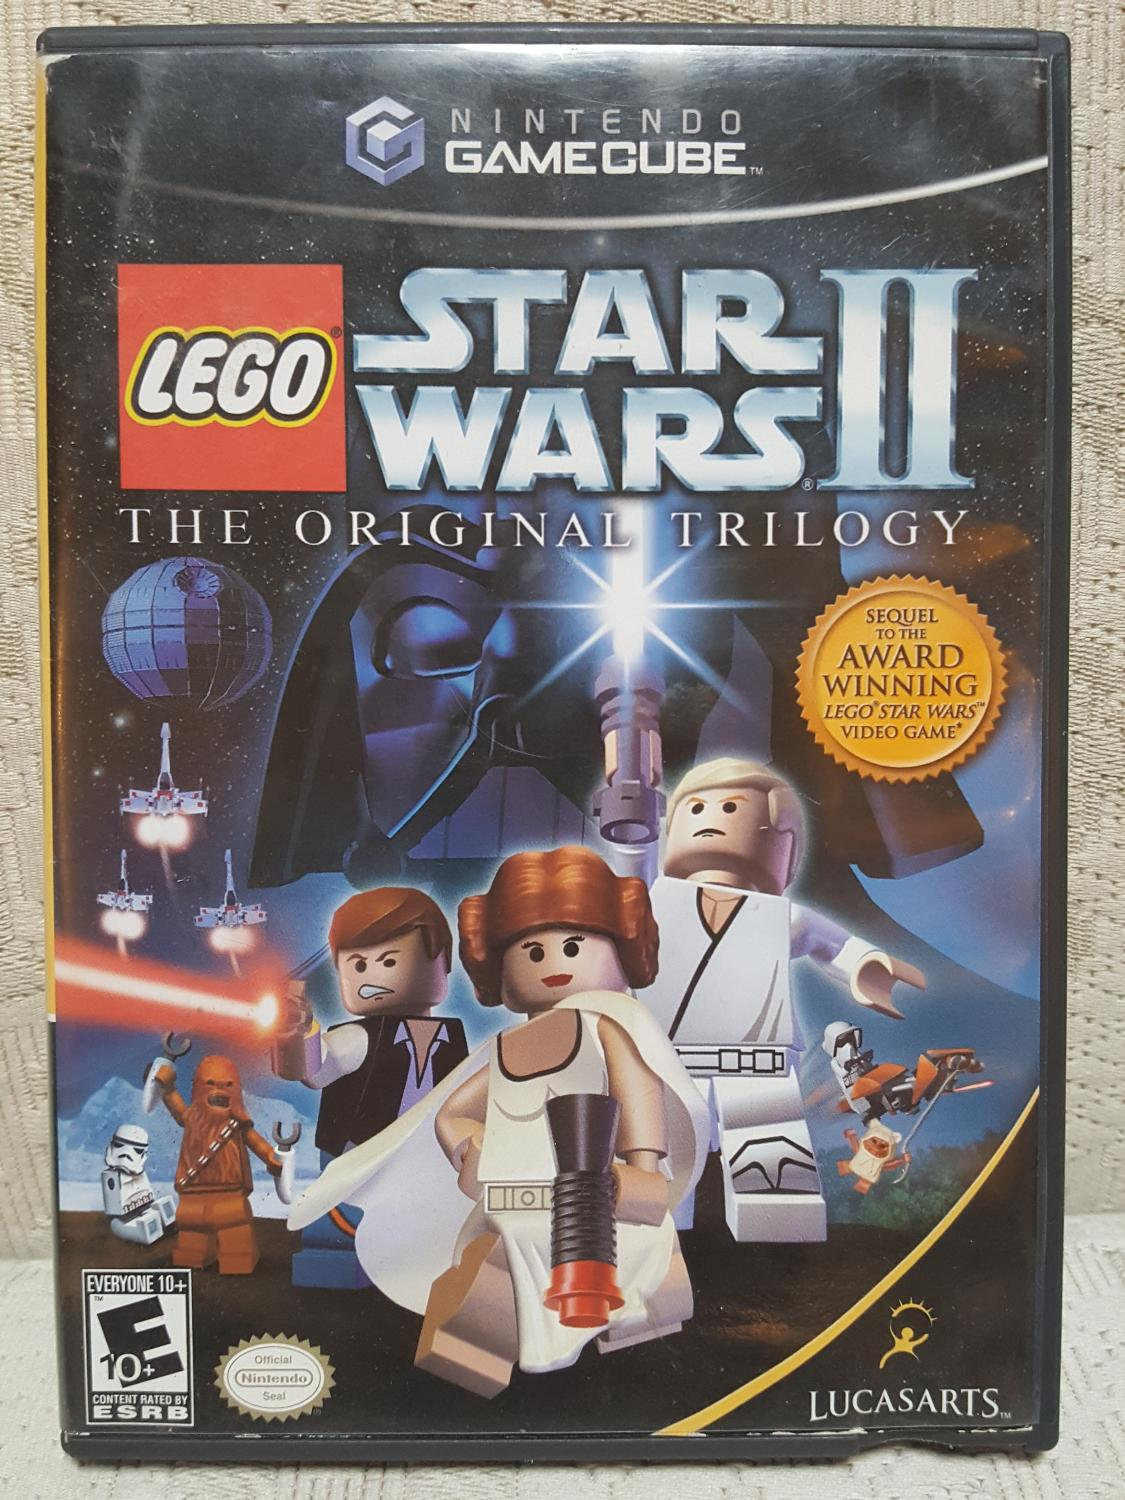 Find More Lego Star Wars 2 For Nintendo Gamecube For Sale At Up To